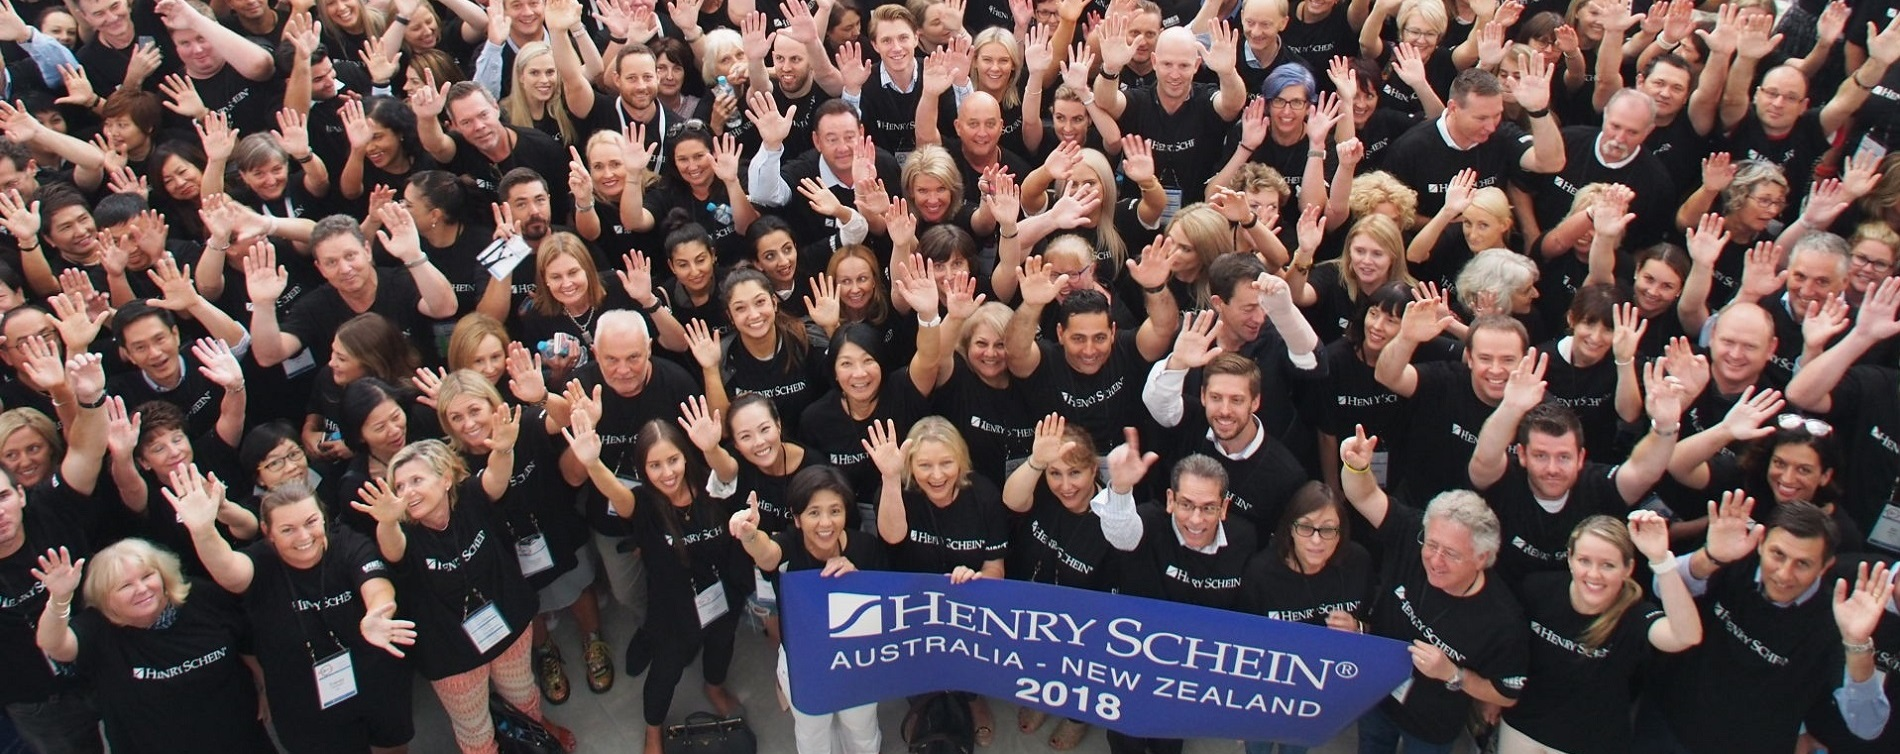 About Henry Schein New Zealand